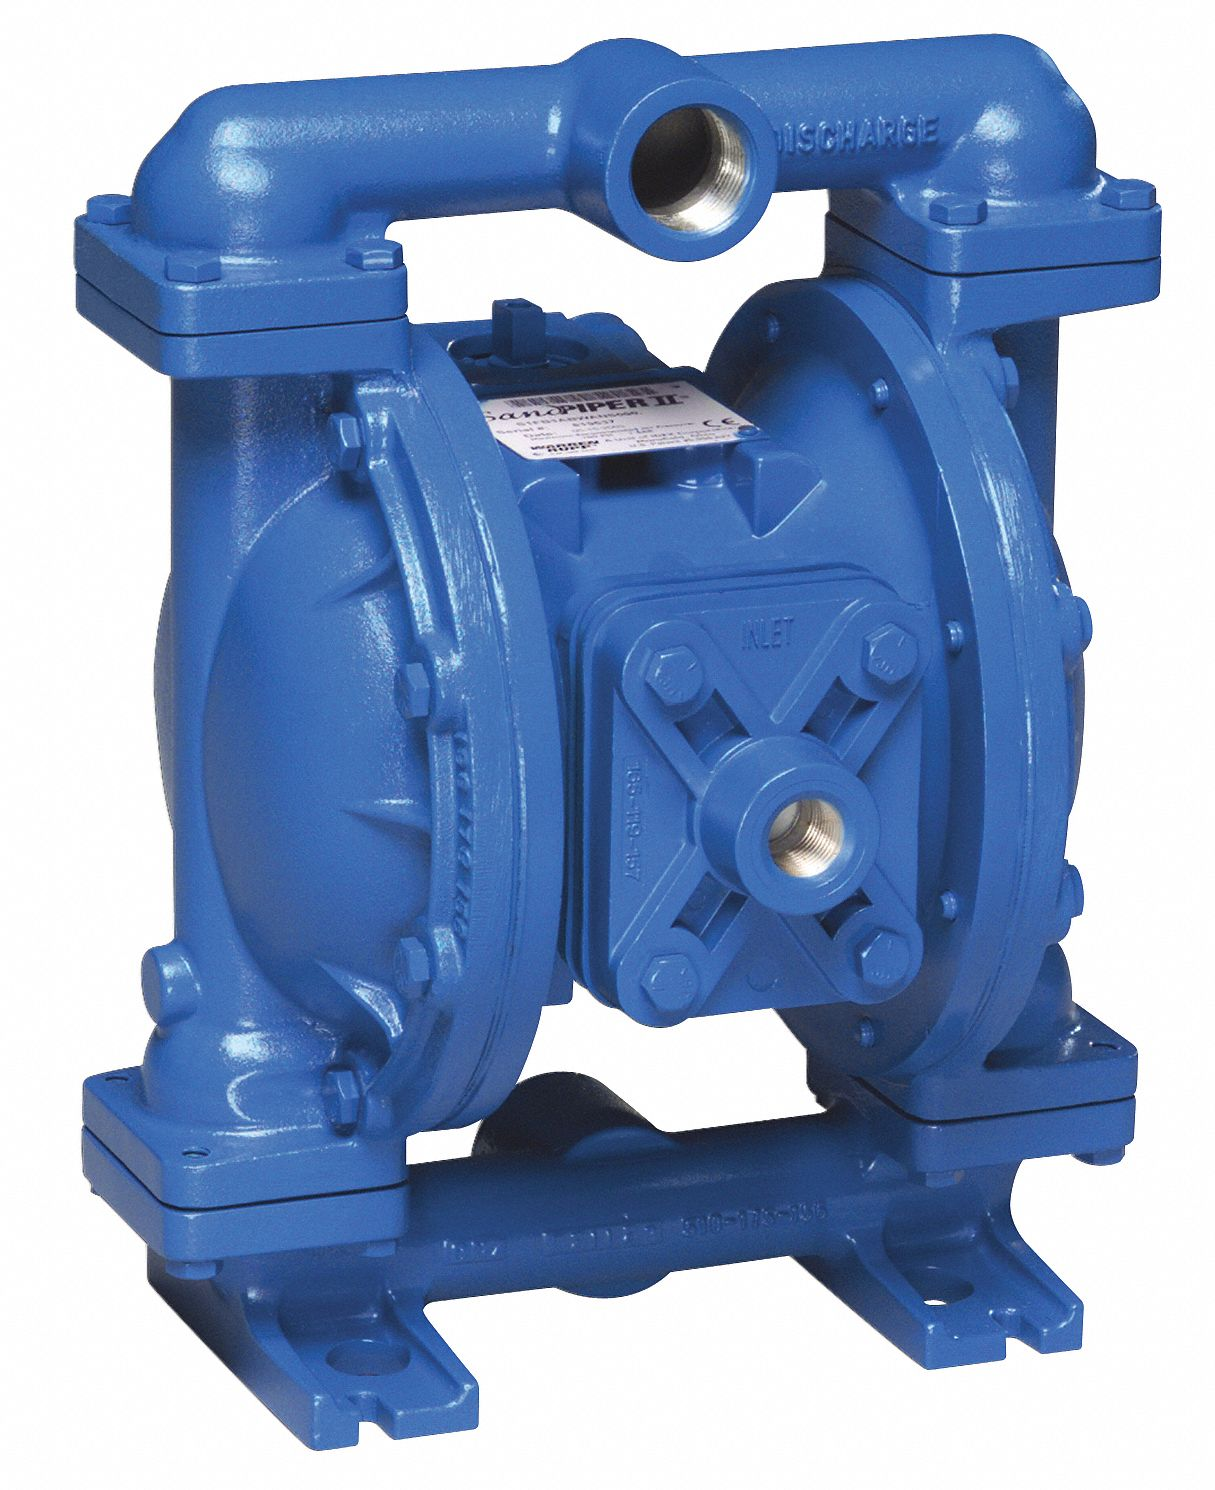 Double Diaphragm Pump,  45 gpm Max. Flow,  Buna N,  Single Manifold Connection,  1 in